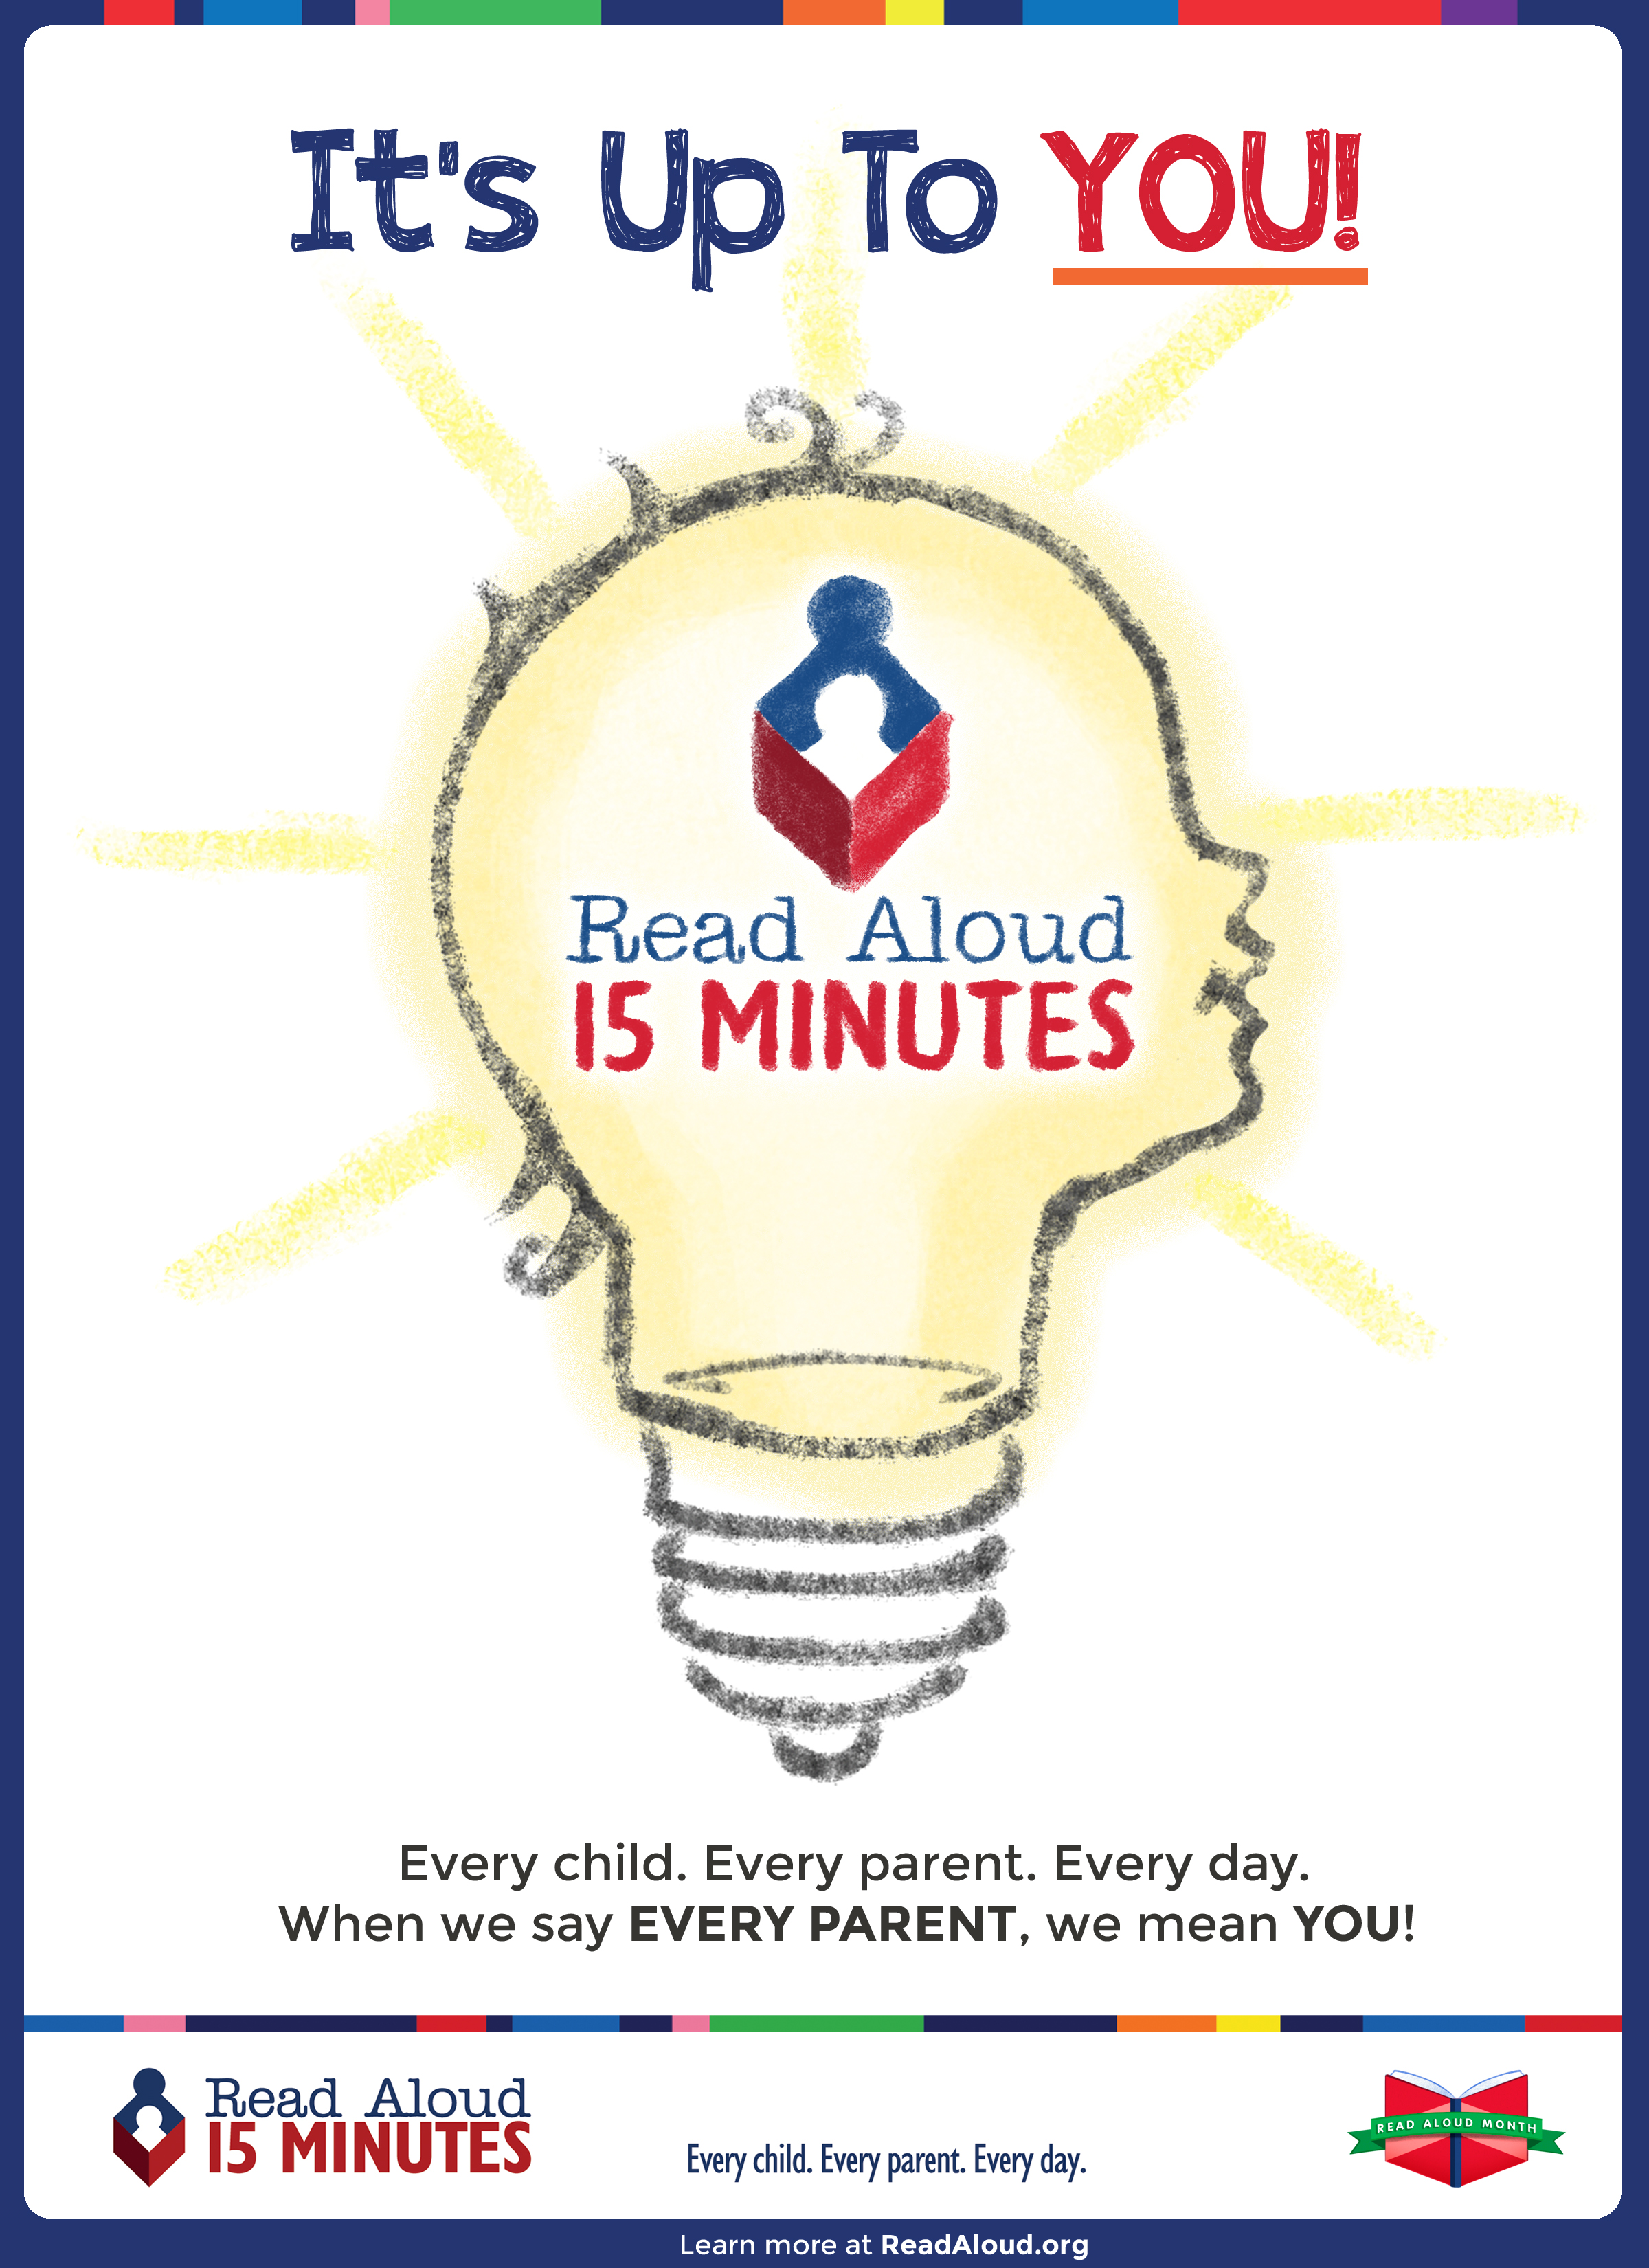 READ.. every child, every parent, every day!